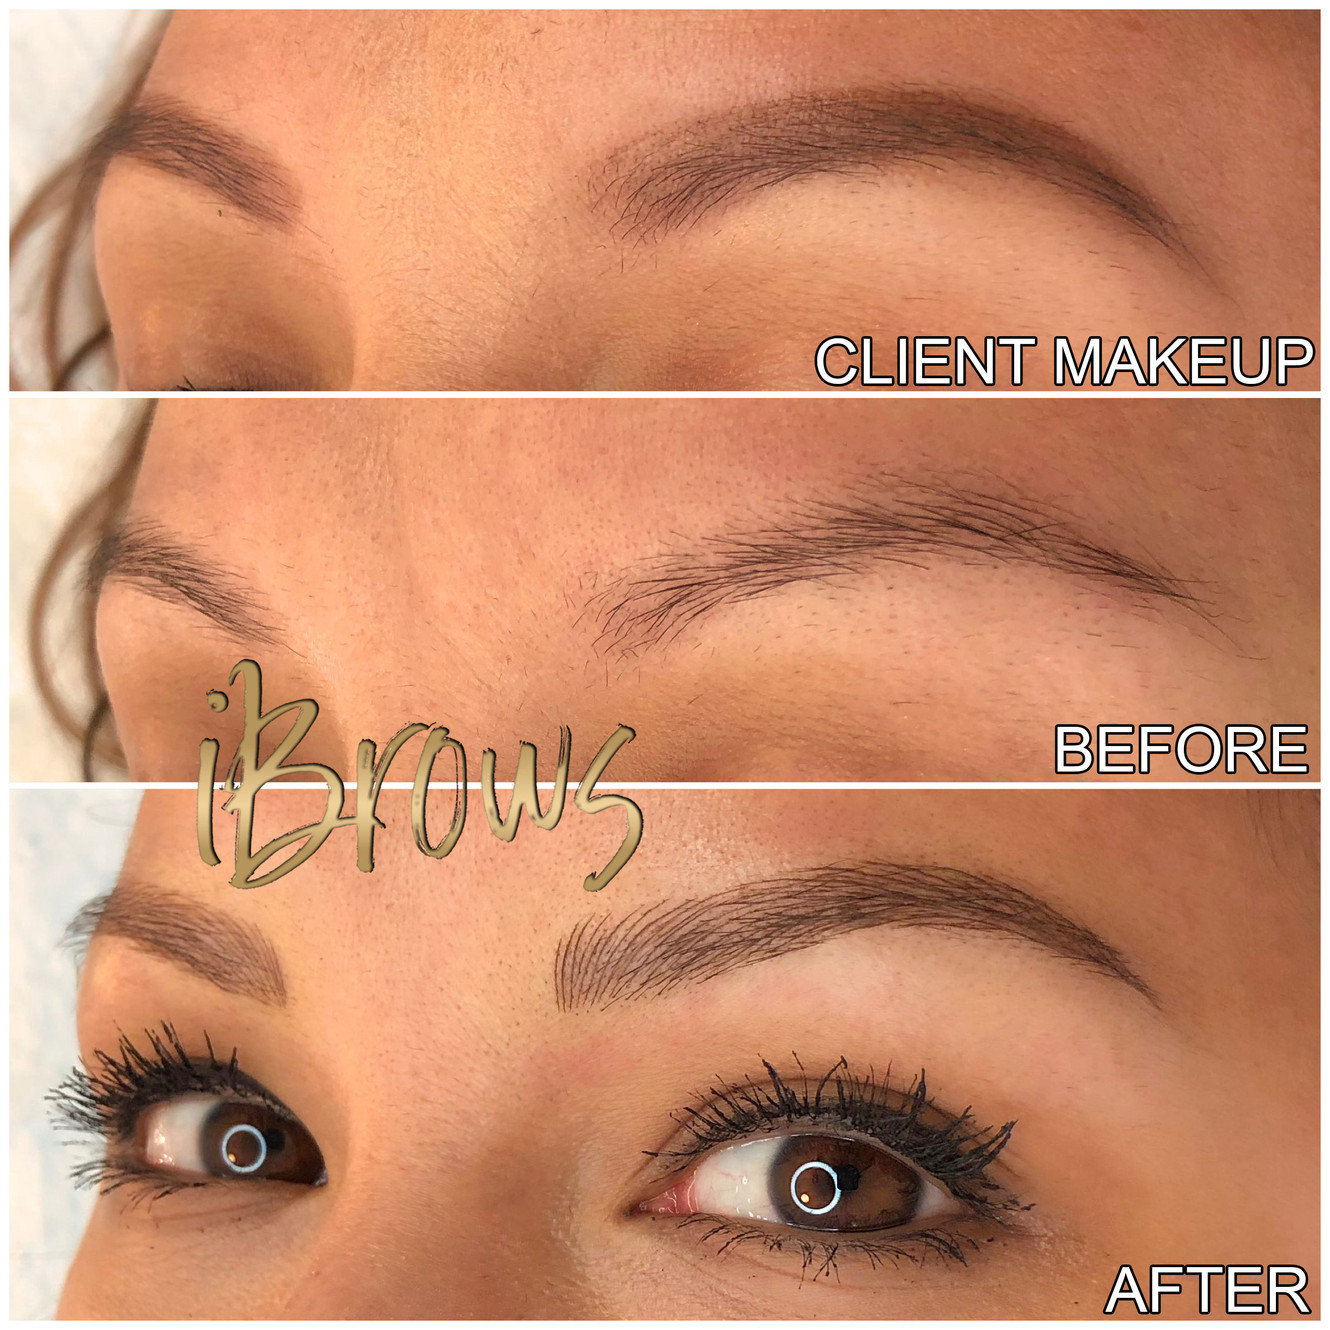 iBrows Studio - Top-Rated Microblading Studio In Saco, ME